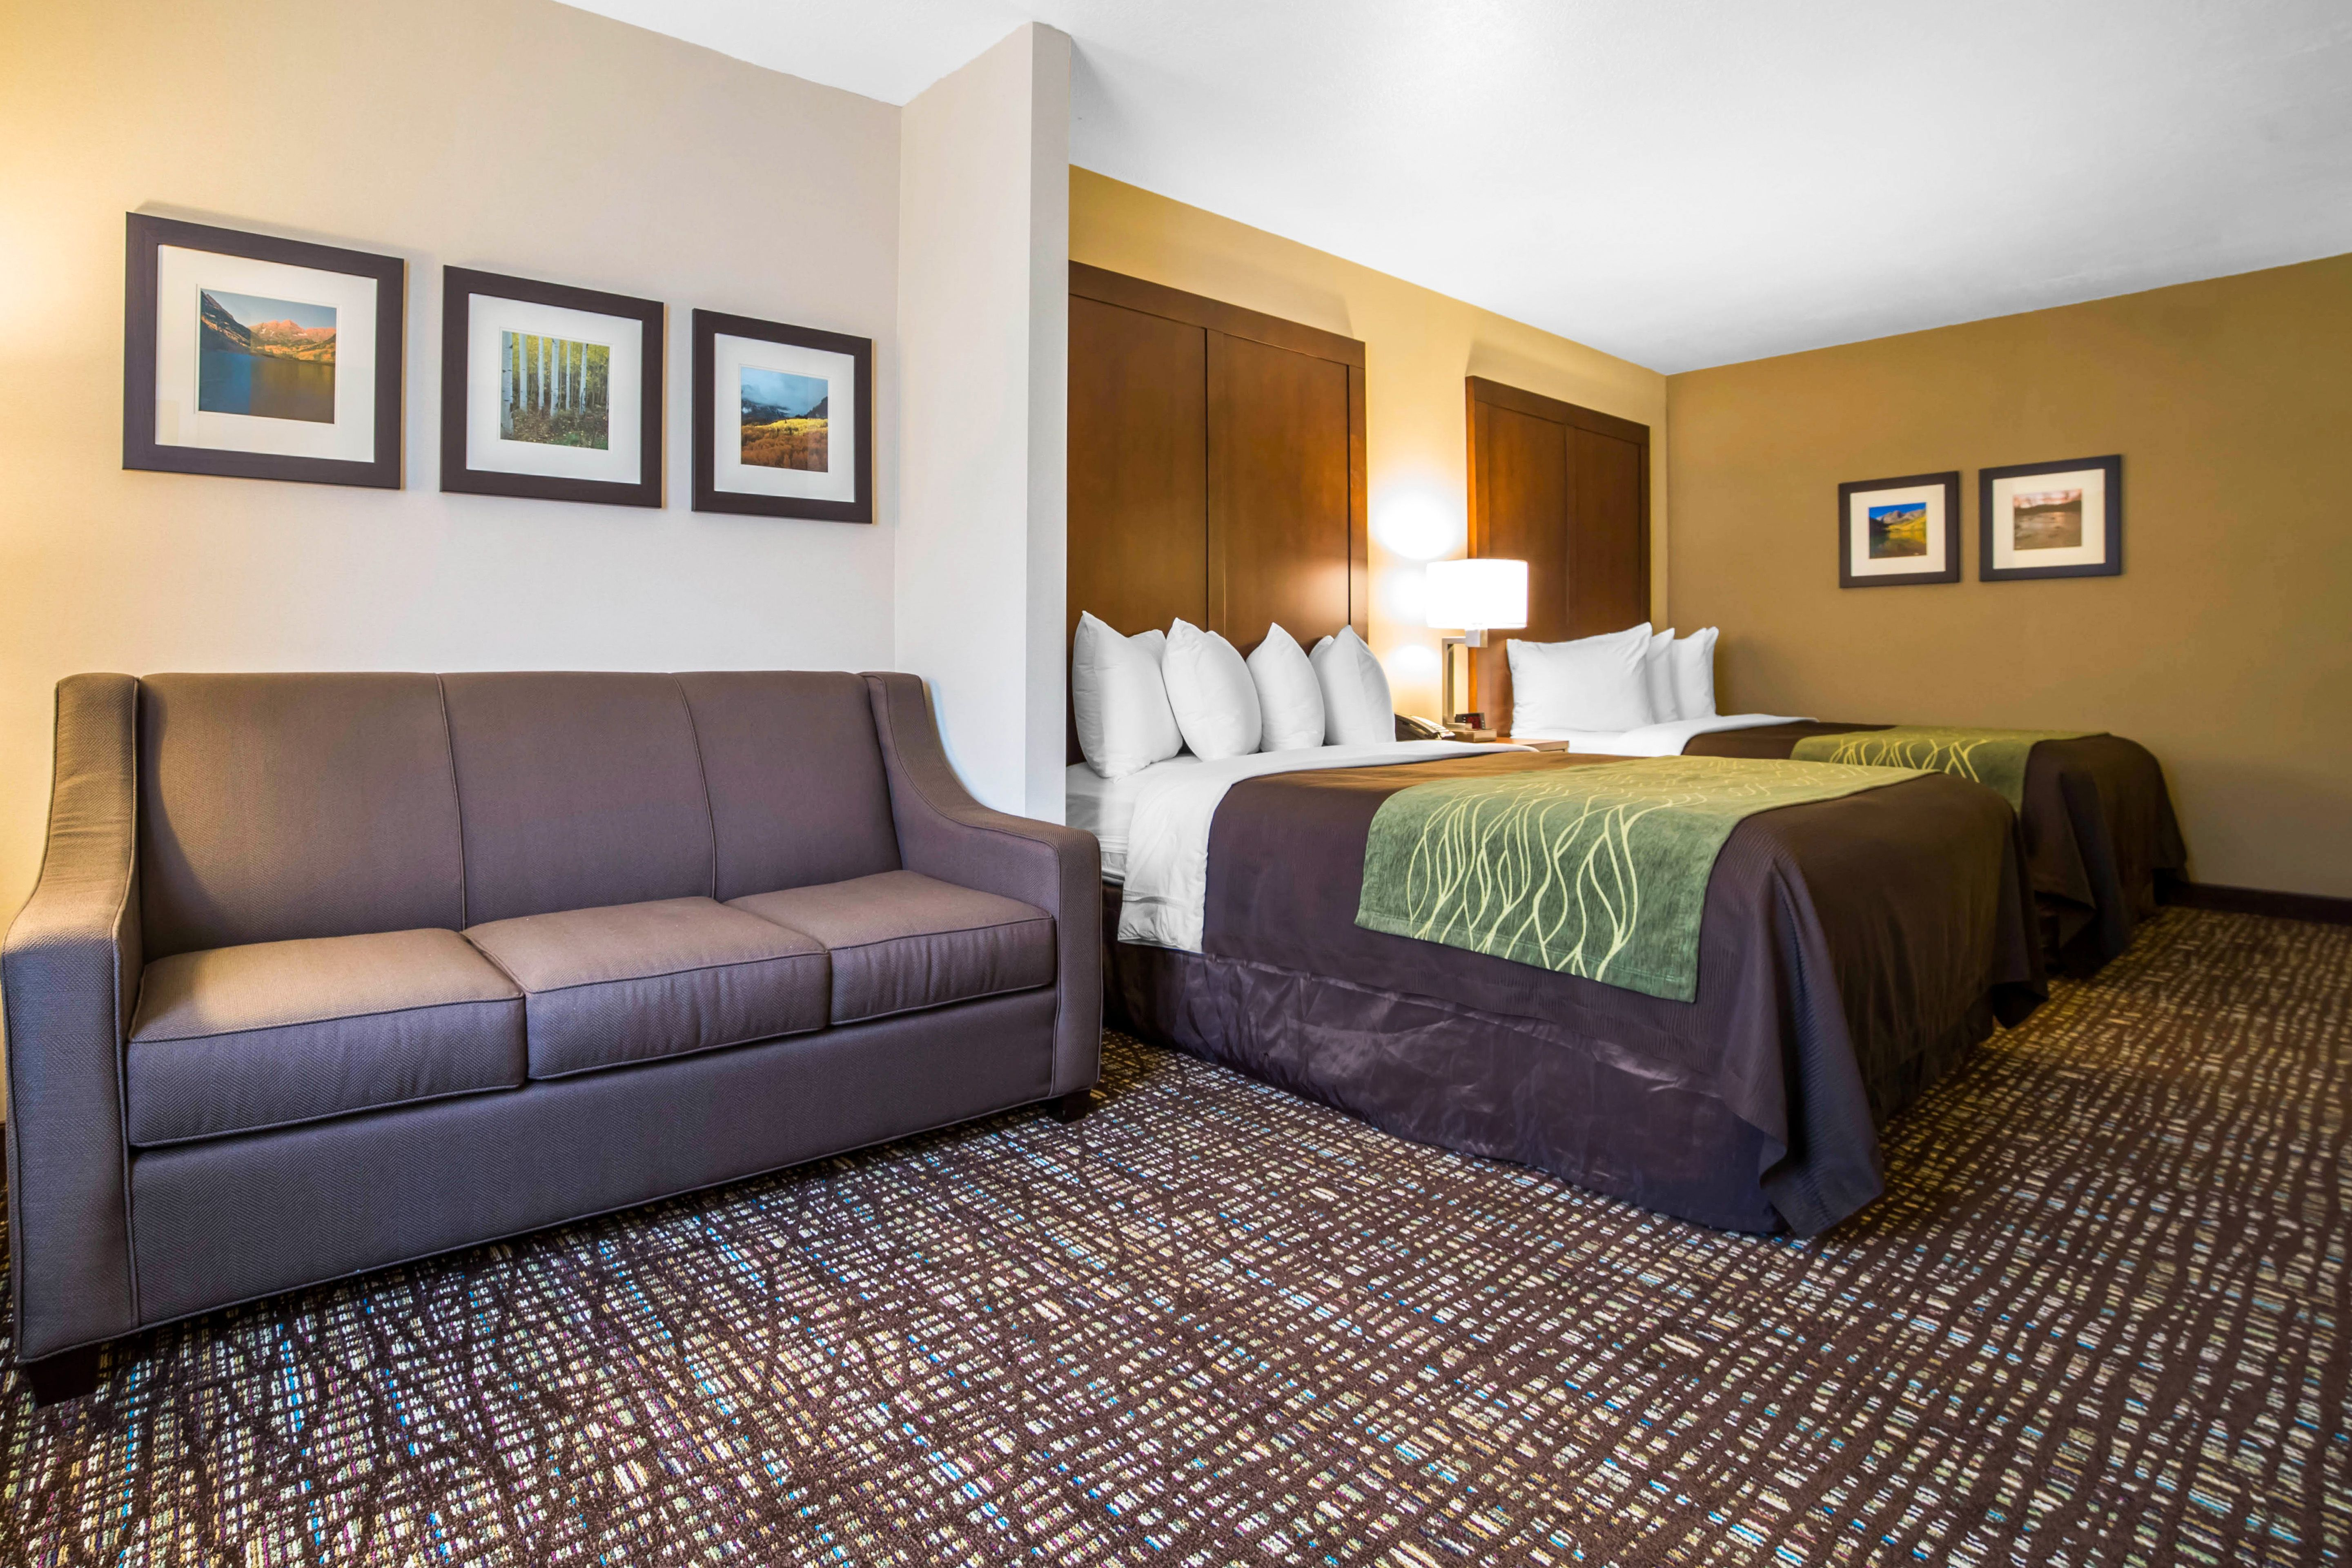 Enjoy Stay At Cozy Comfort Inn And Suites Hotel In Orem Near